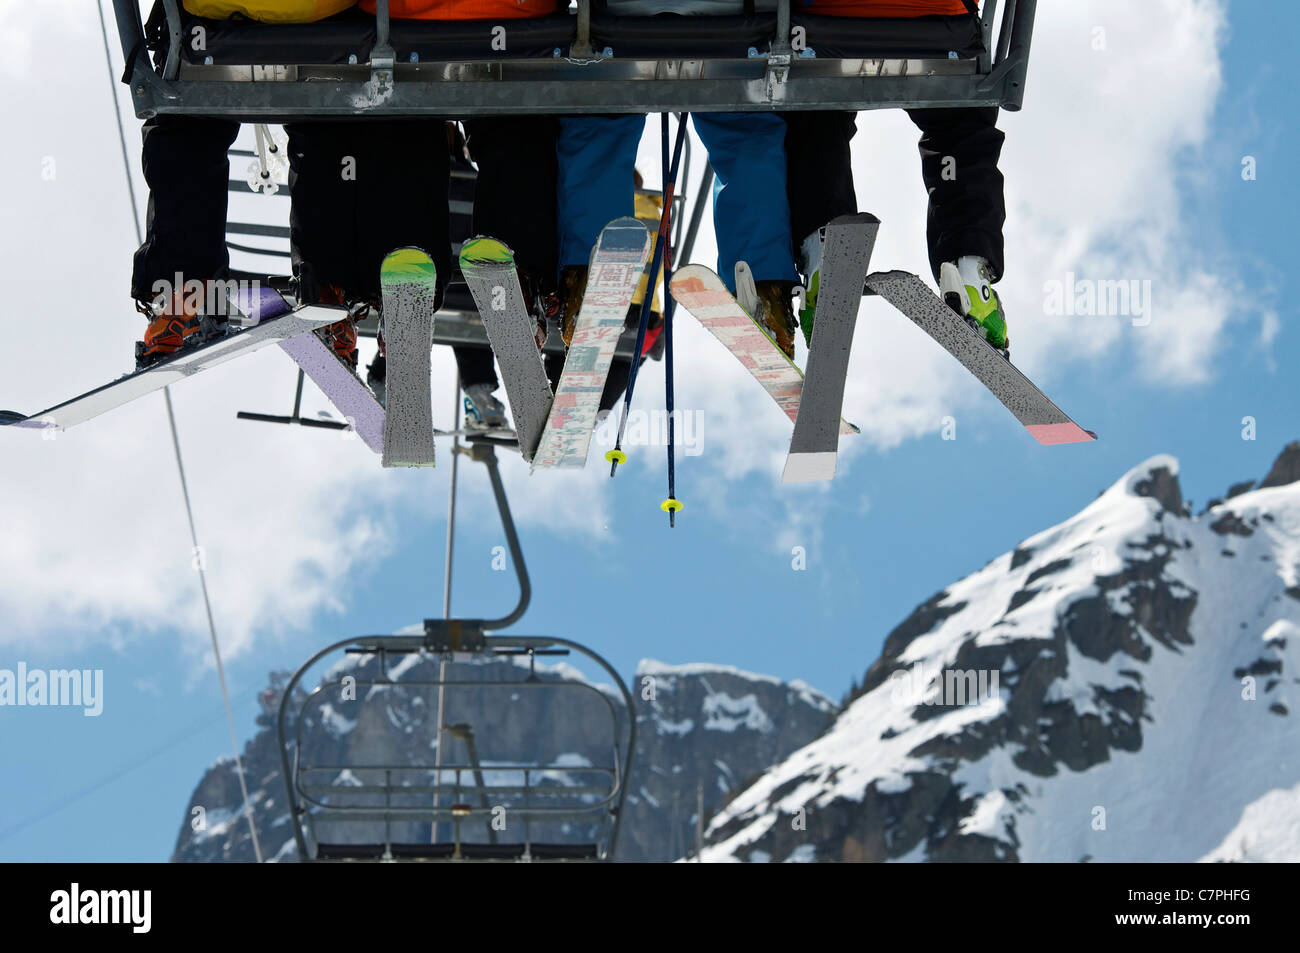 Skiers riding chair lift over mountains - Stock Image